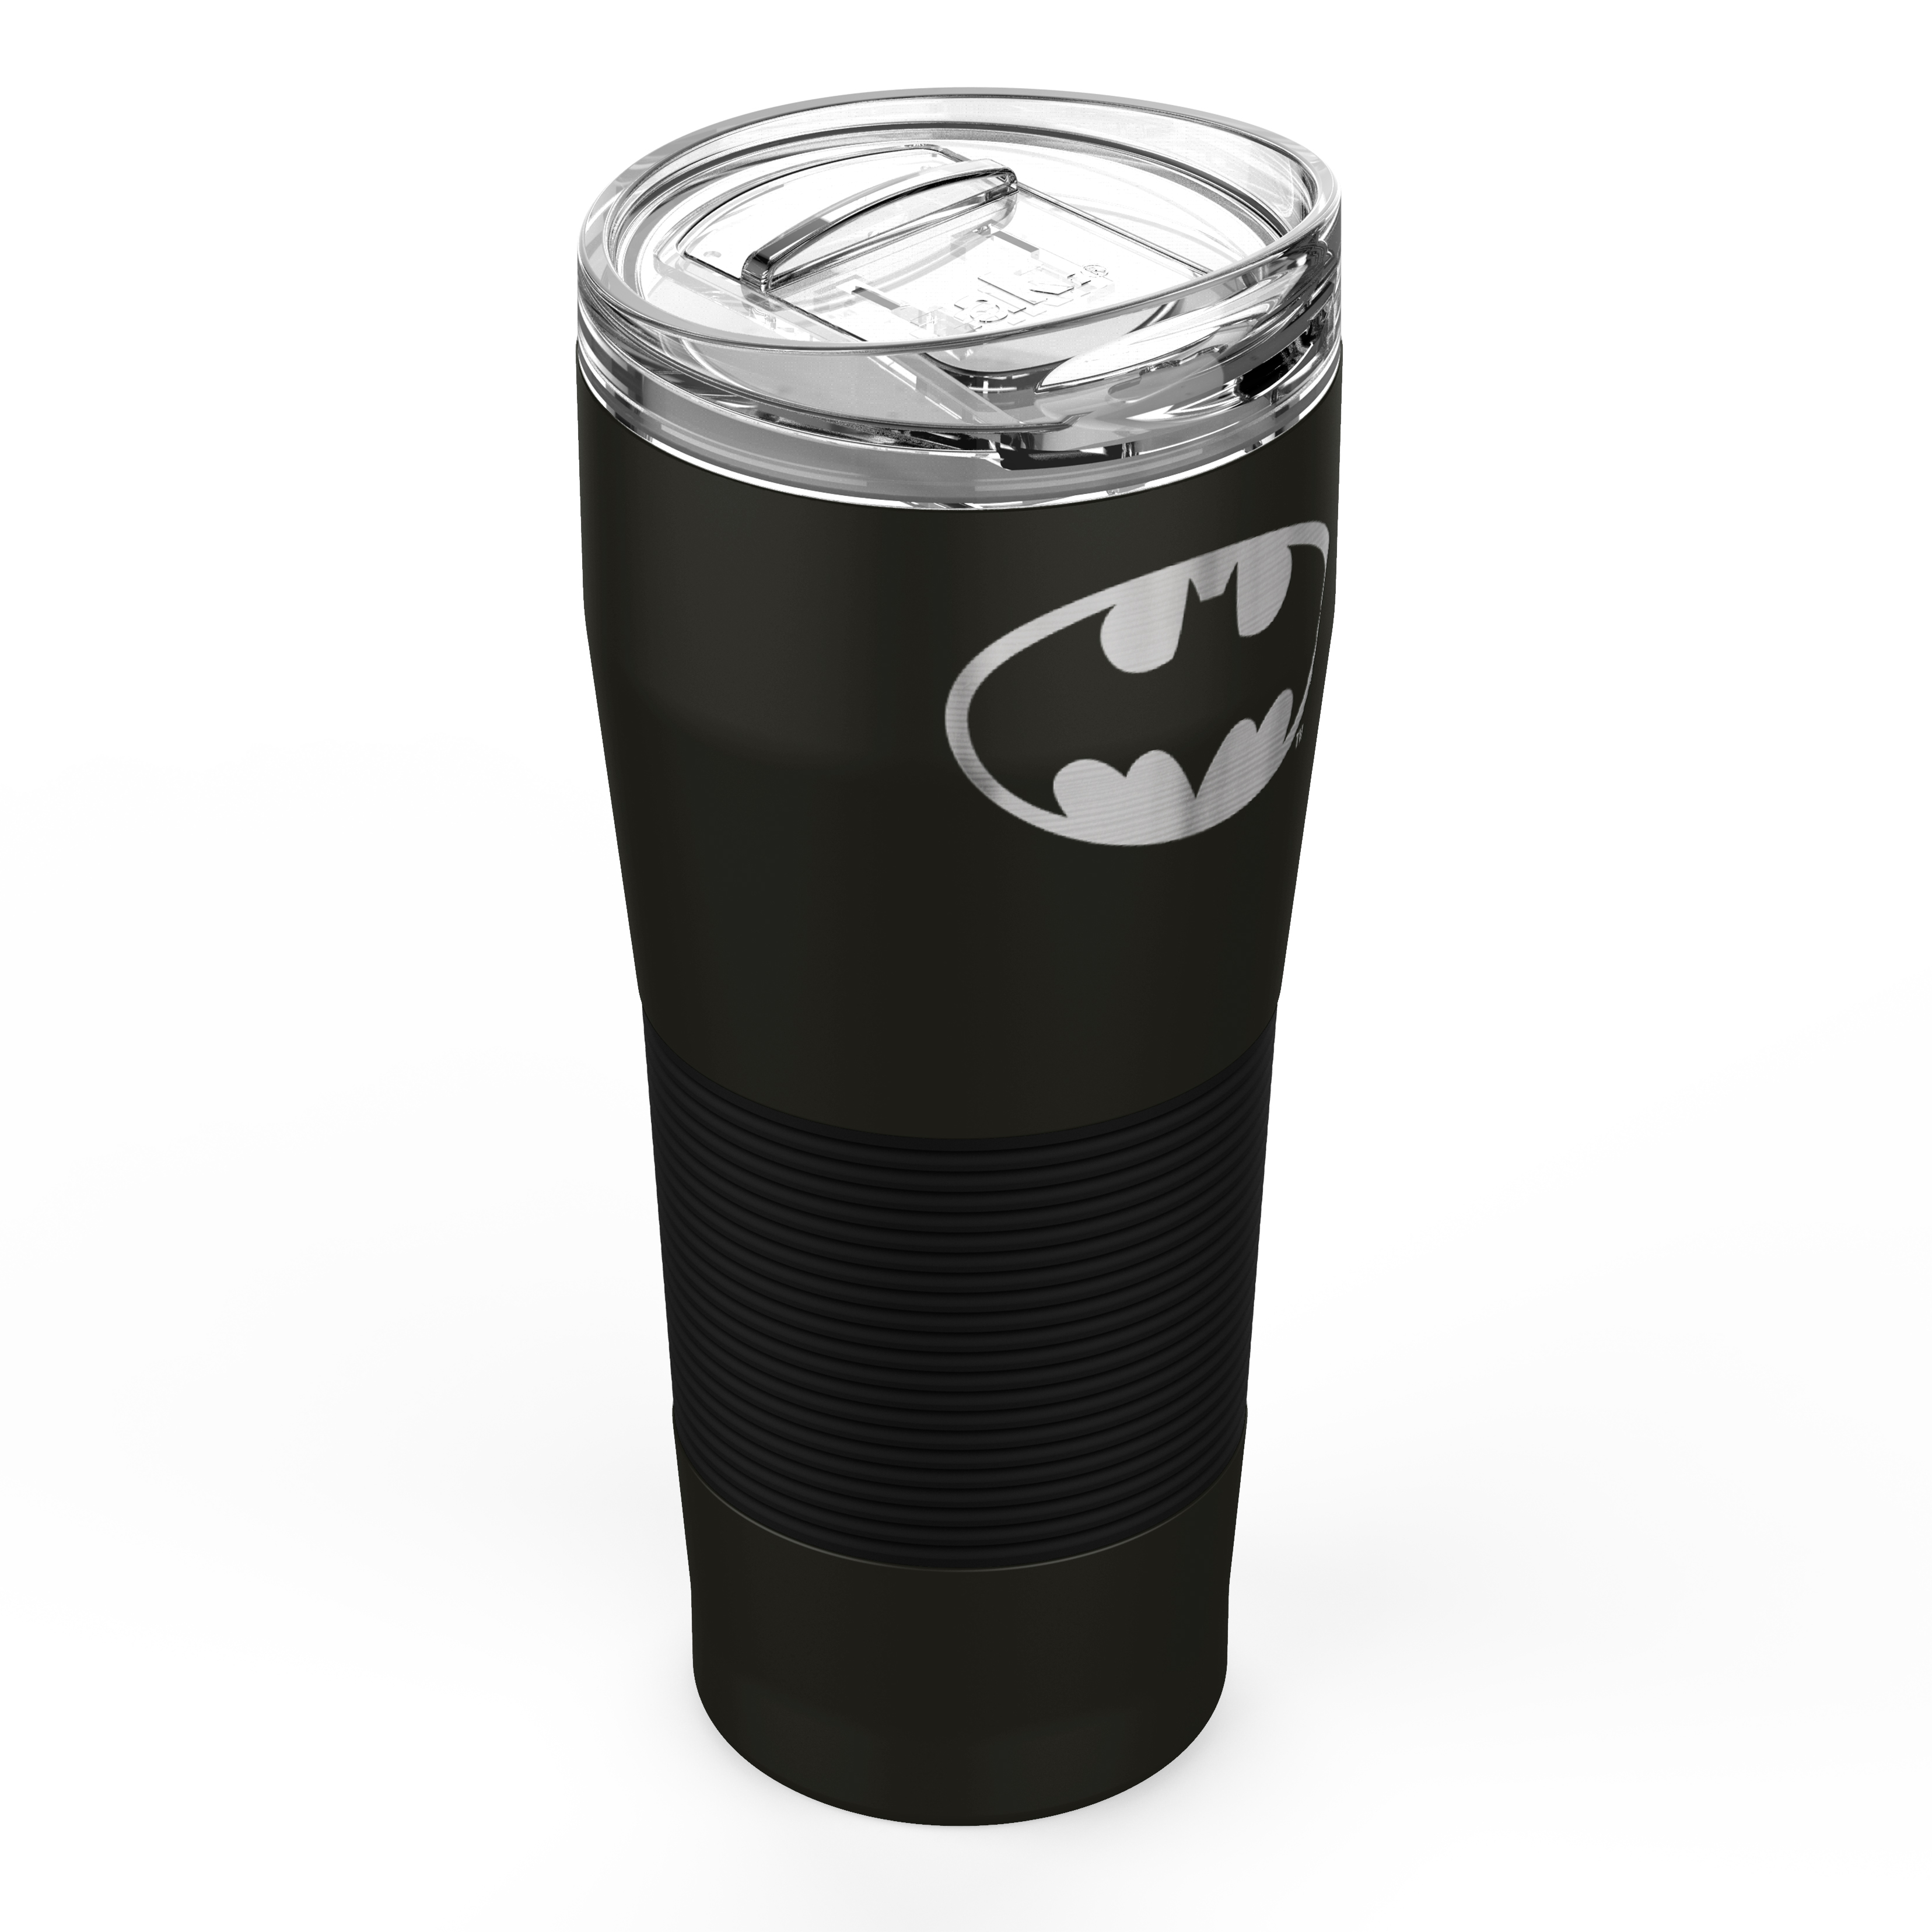 DC Comics 28 ounce Vacuum Insulated Stainless Steel Tumbler, Batman slideshow image 3